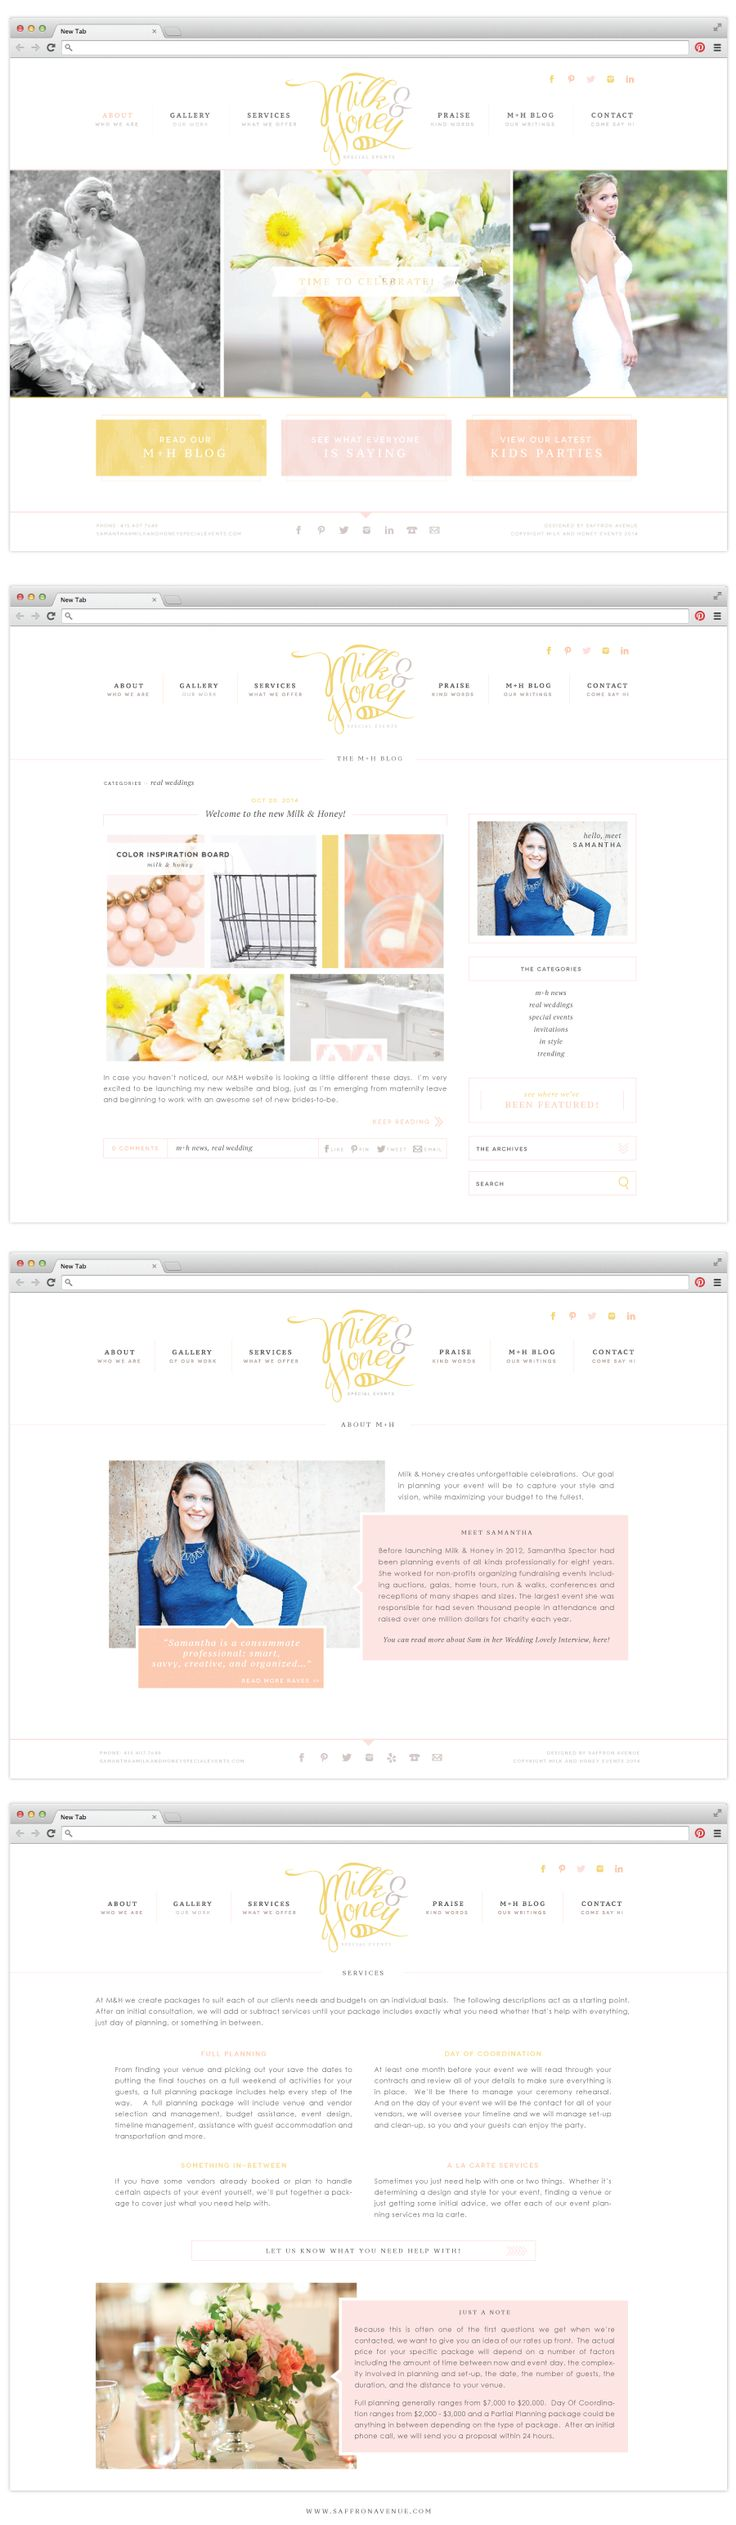 Milk+Honey-WebsiteMockup